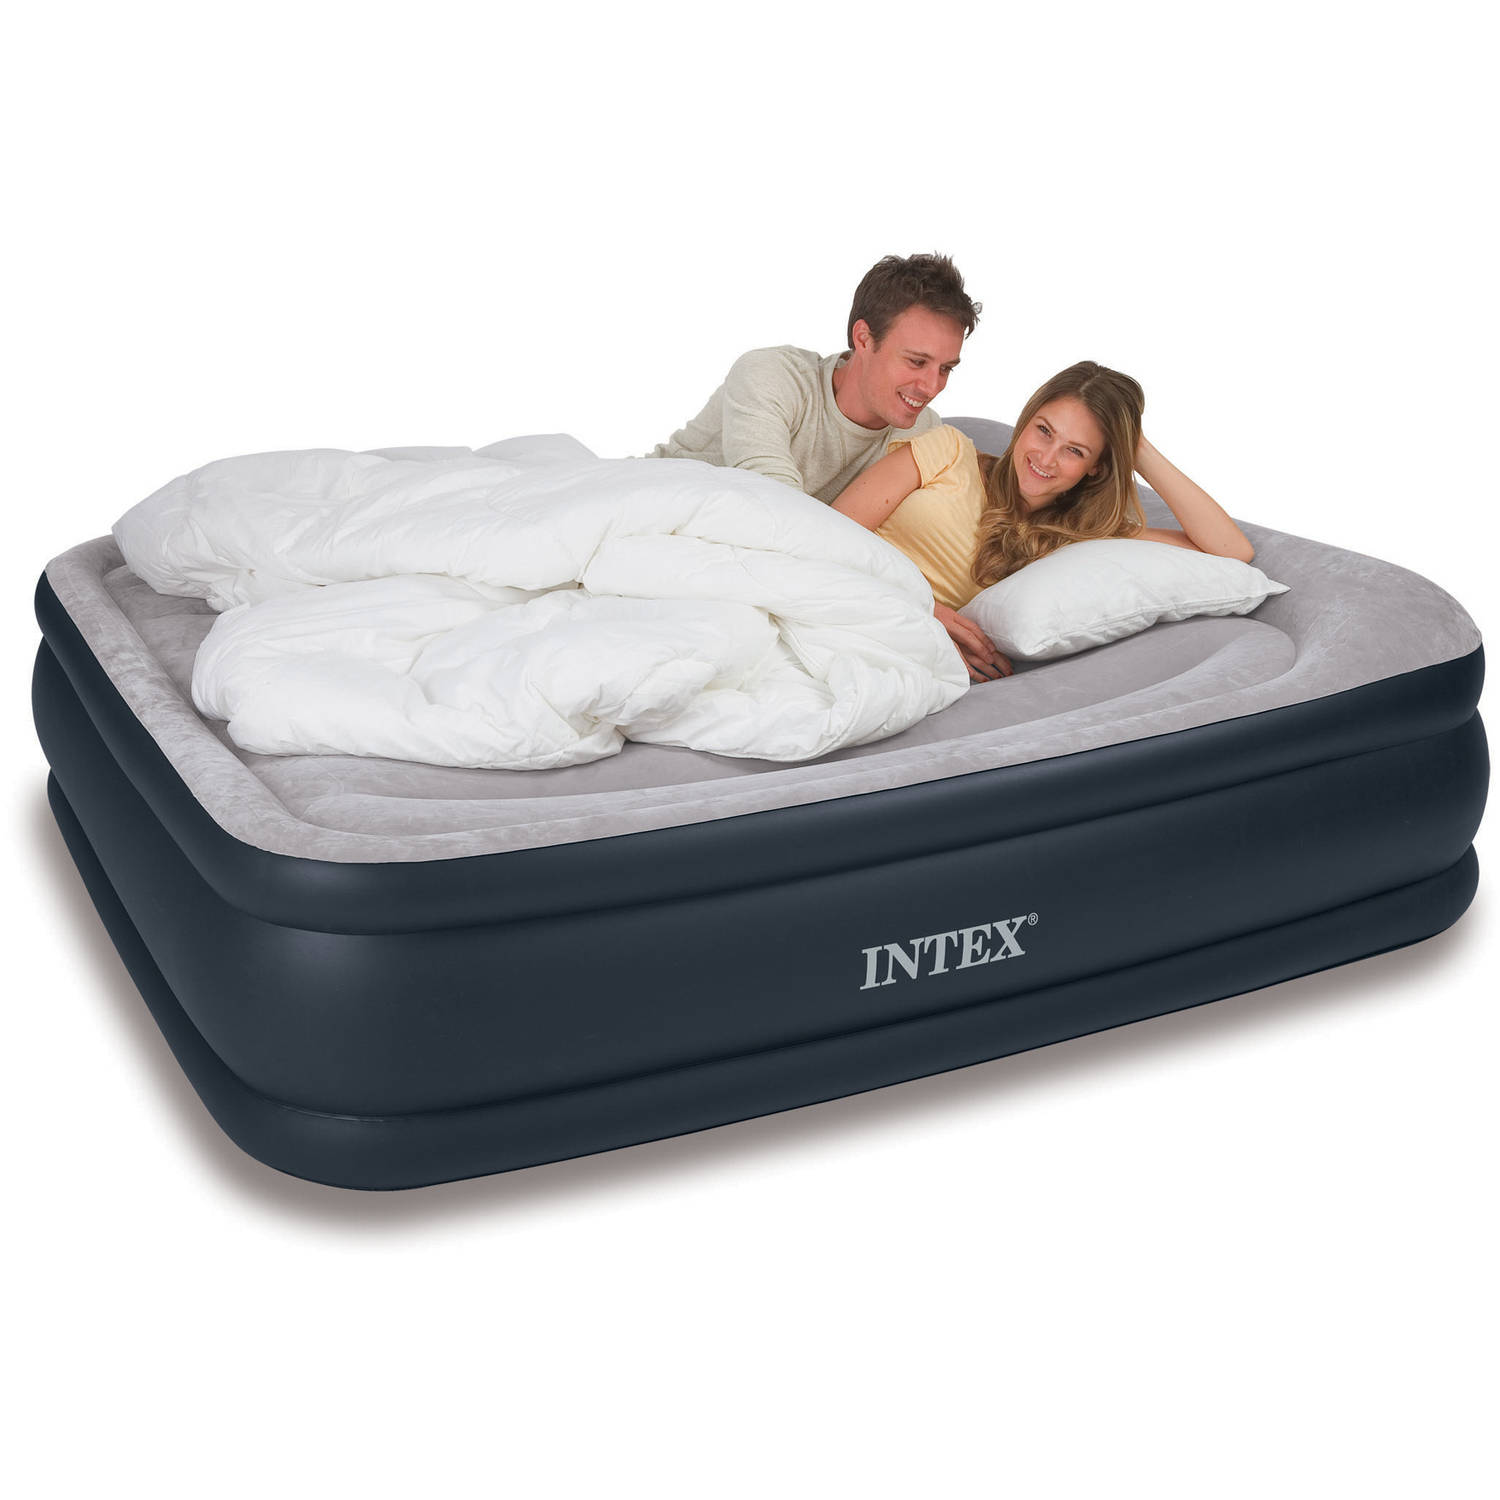 Intex Deluxe Raised Pillow Rest Airbed Mattress with Built-In Pump, Twin, Full and Queen Sizes ...